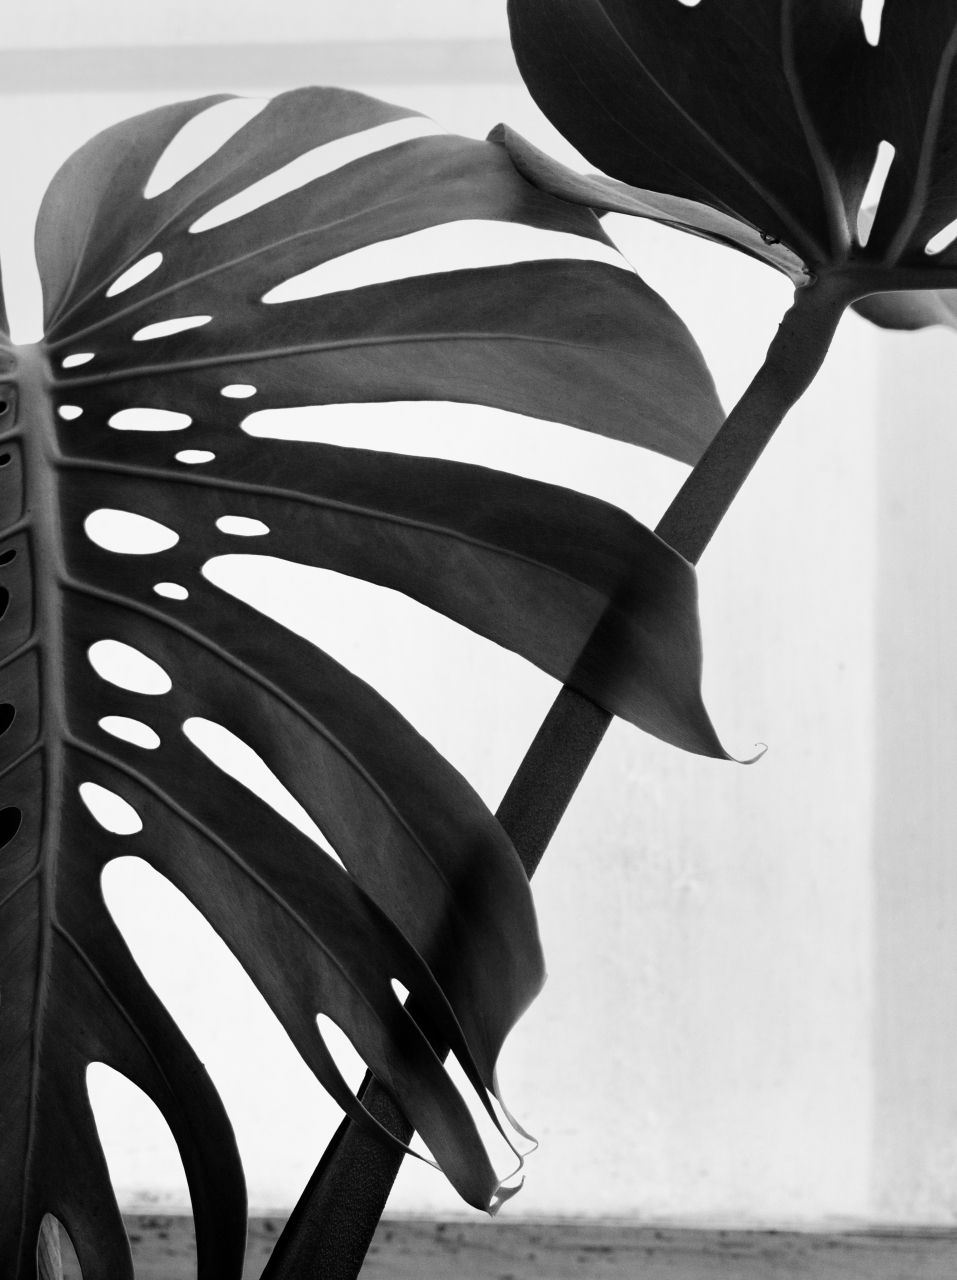 Imogen Cunningham flower photography | Natural Forms ...